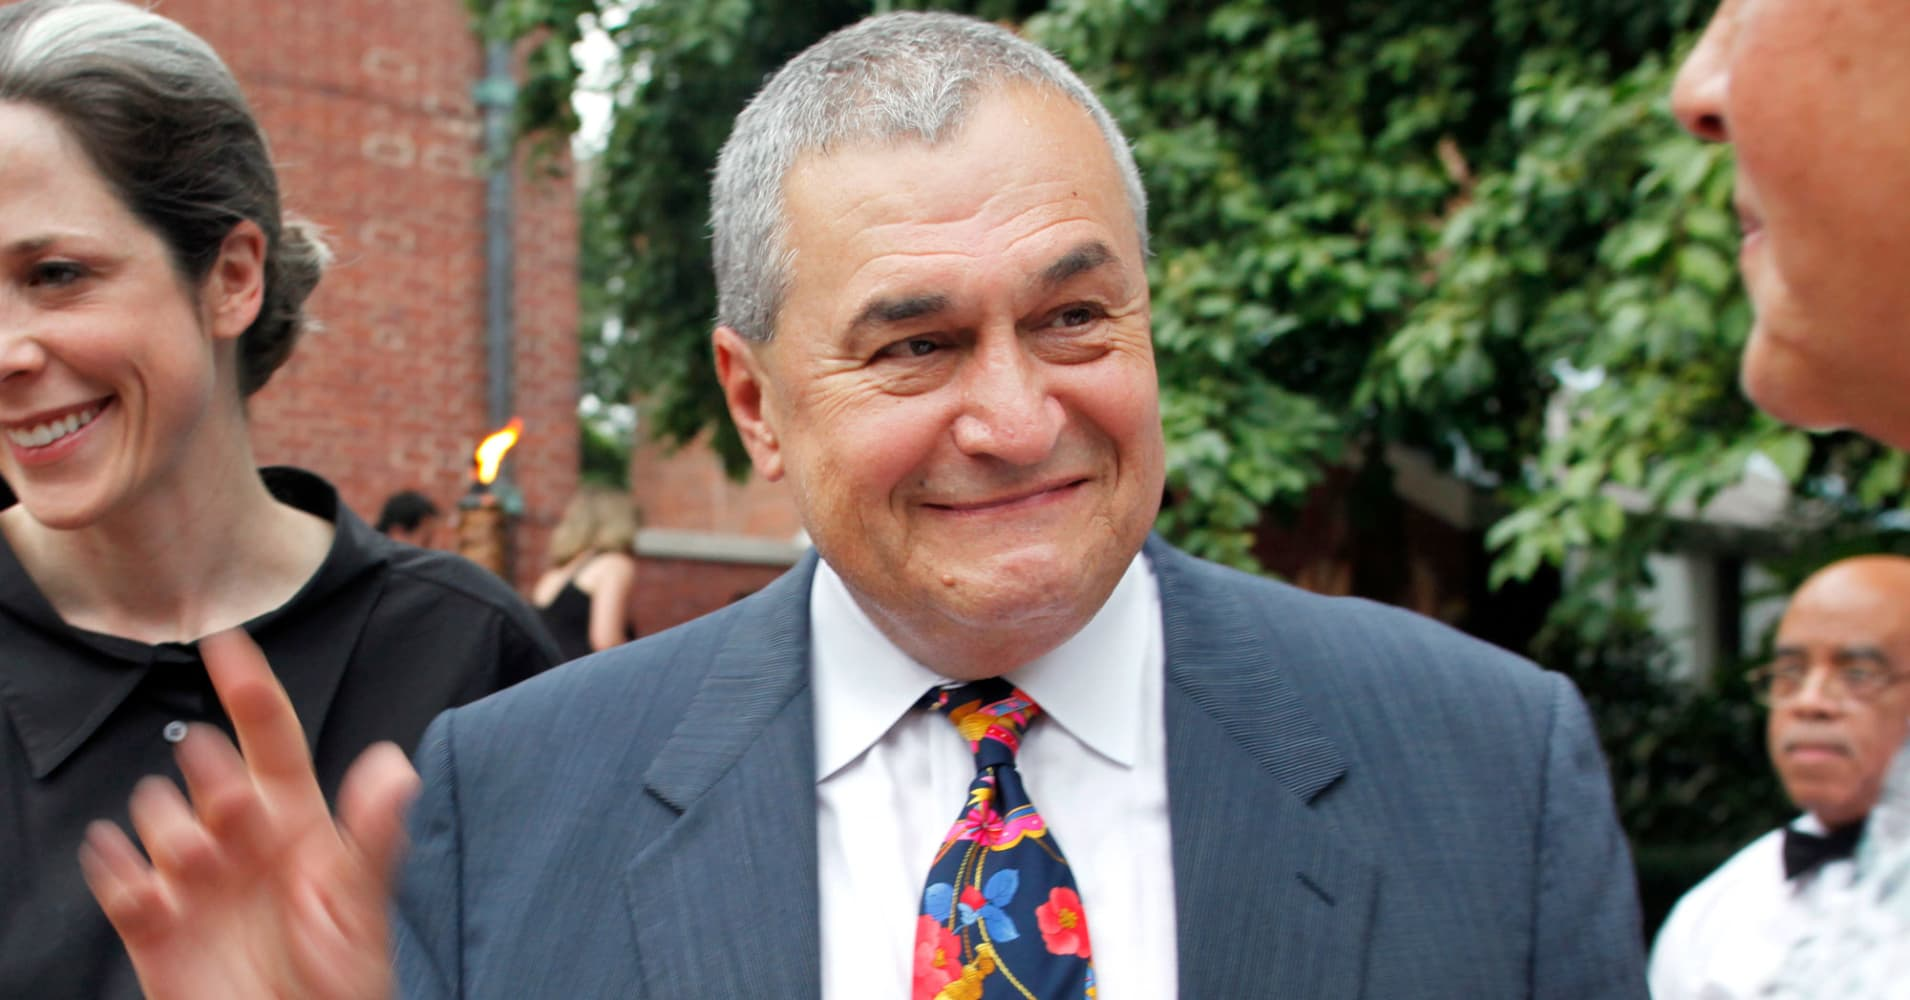 Federal prosecutors said to be investigating lobbyist Tony Podesta after special counsel referral